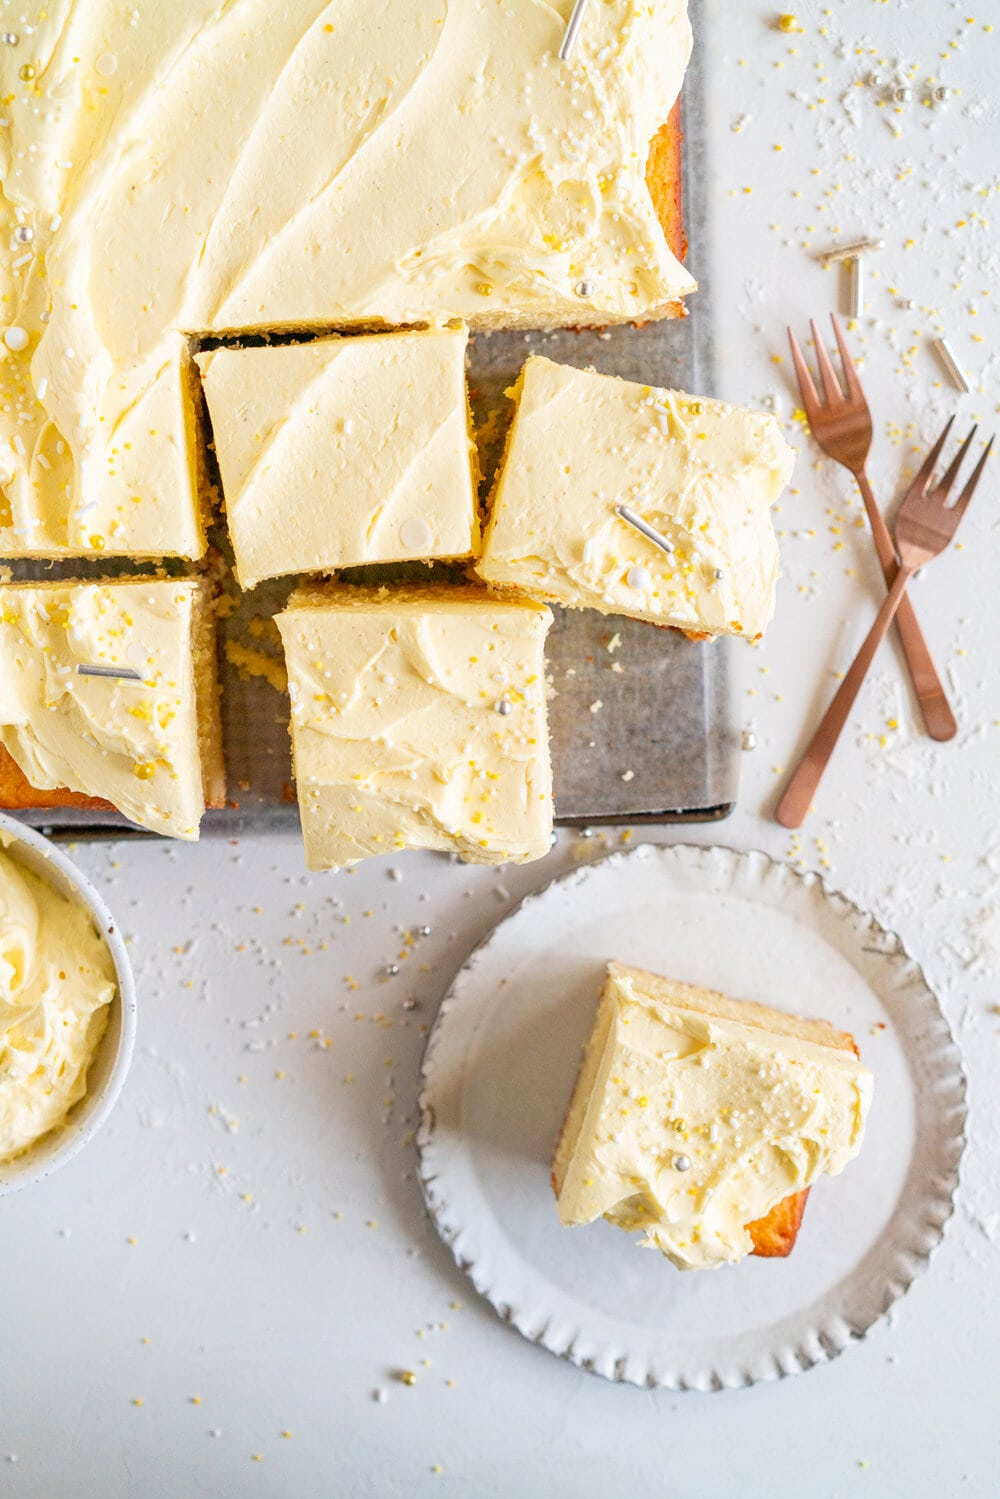 Lemon Yogurt Sheet Cake with Lemon Curd Swiss Meringue Buttercream. Fluffy lemon yogurt cake is topped with a punchy, silky lemon curd swiss meringue buttercream. This sheet cake is perfect for feeding a crowd. #sheetcake #lemoncurd #swissmeringuebuttercream